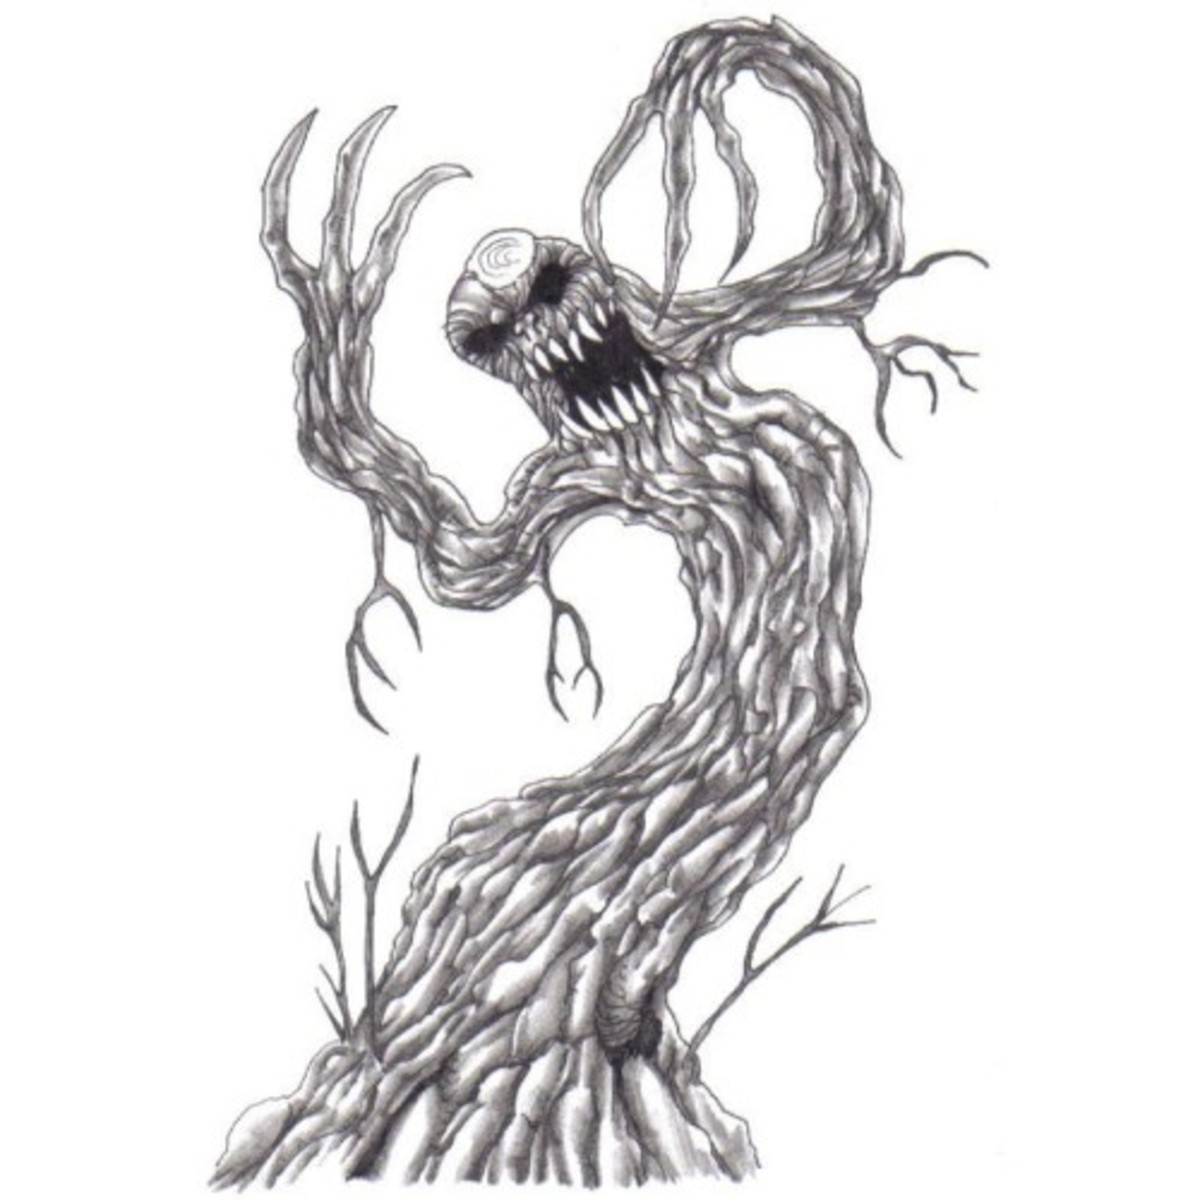 This is an example of when I drew a fantasy tree from digital photos I took of trees - inspiration took hold!